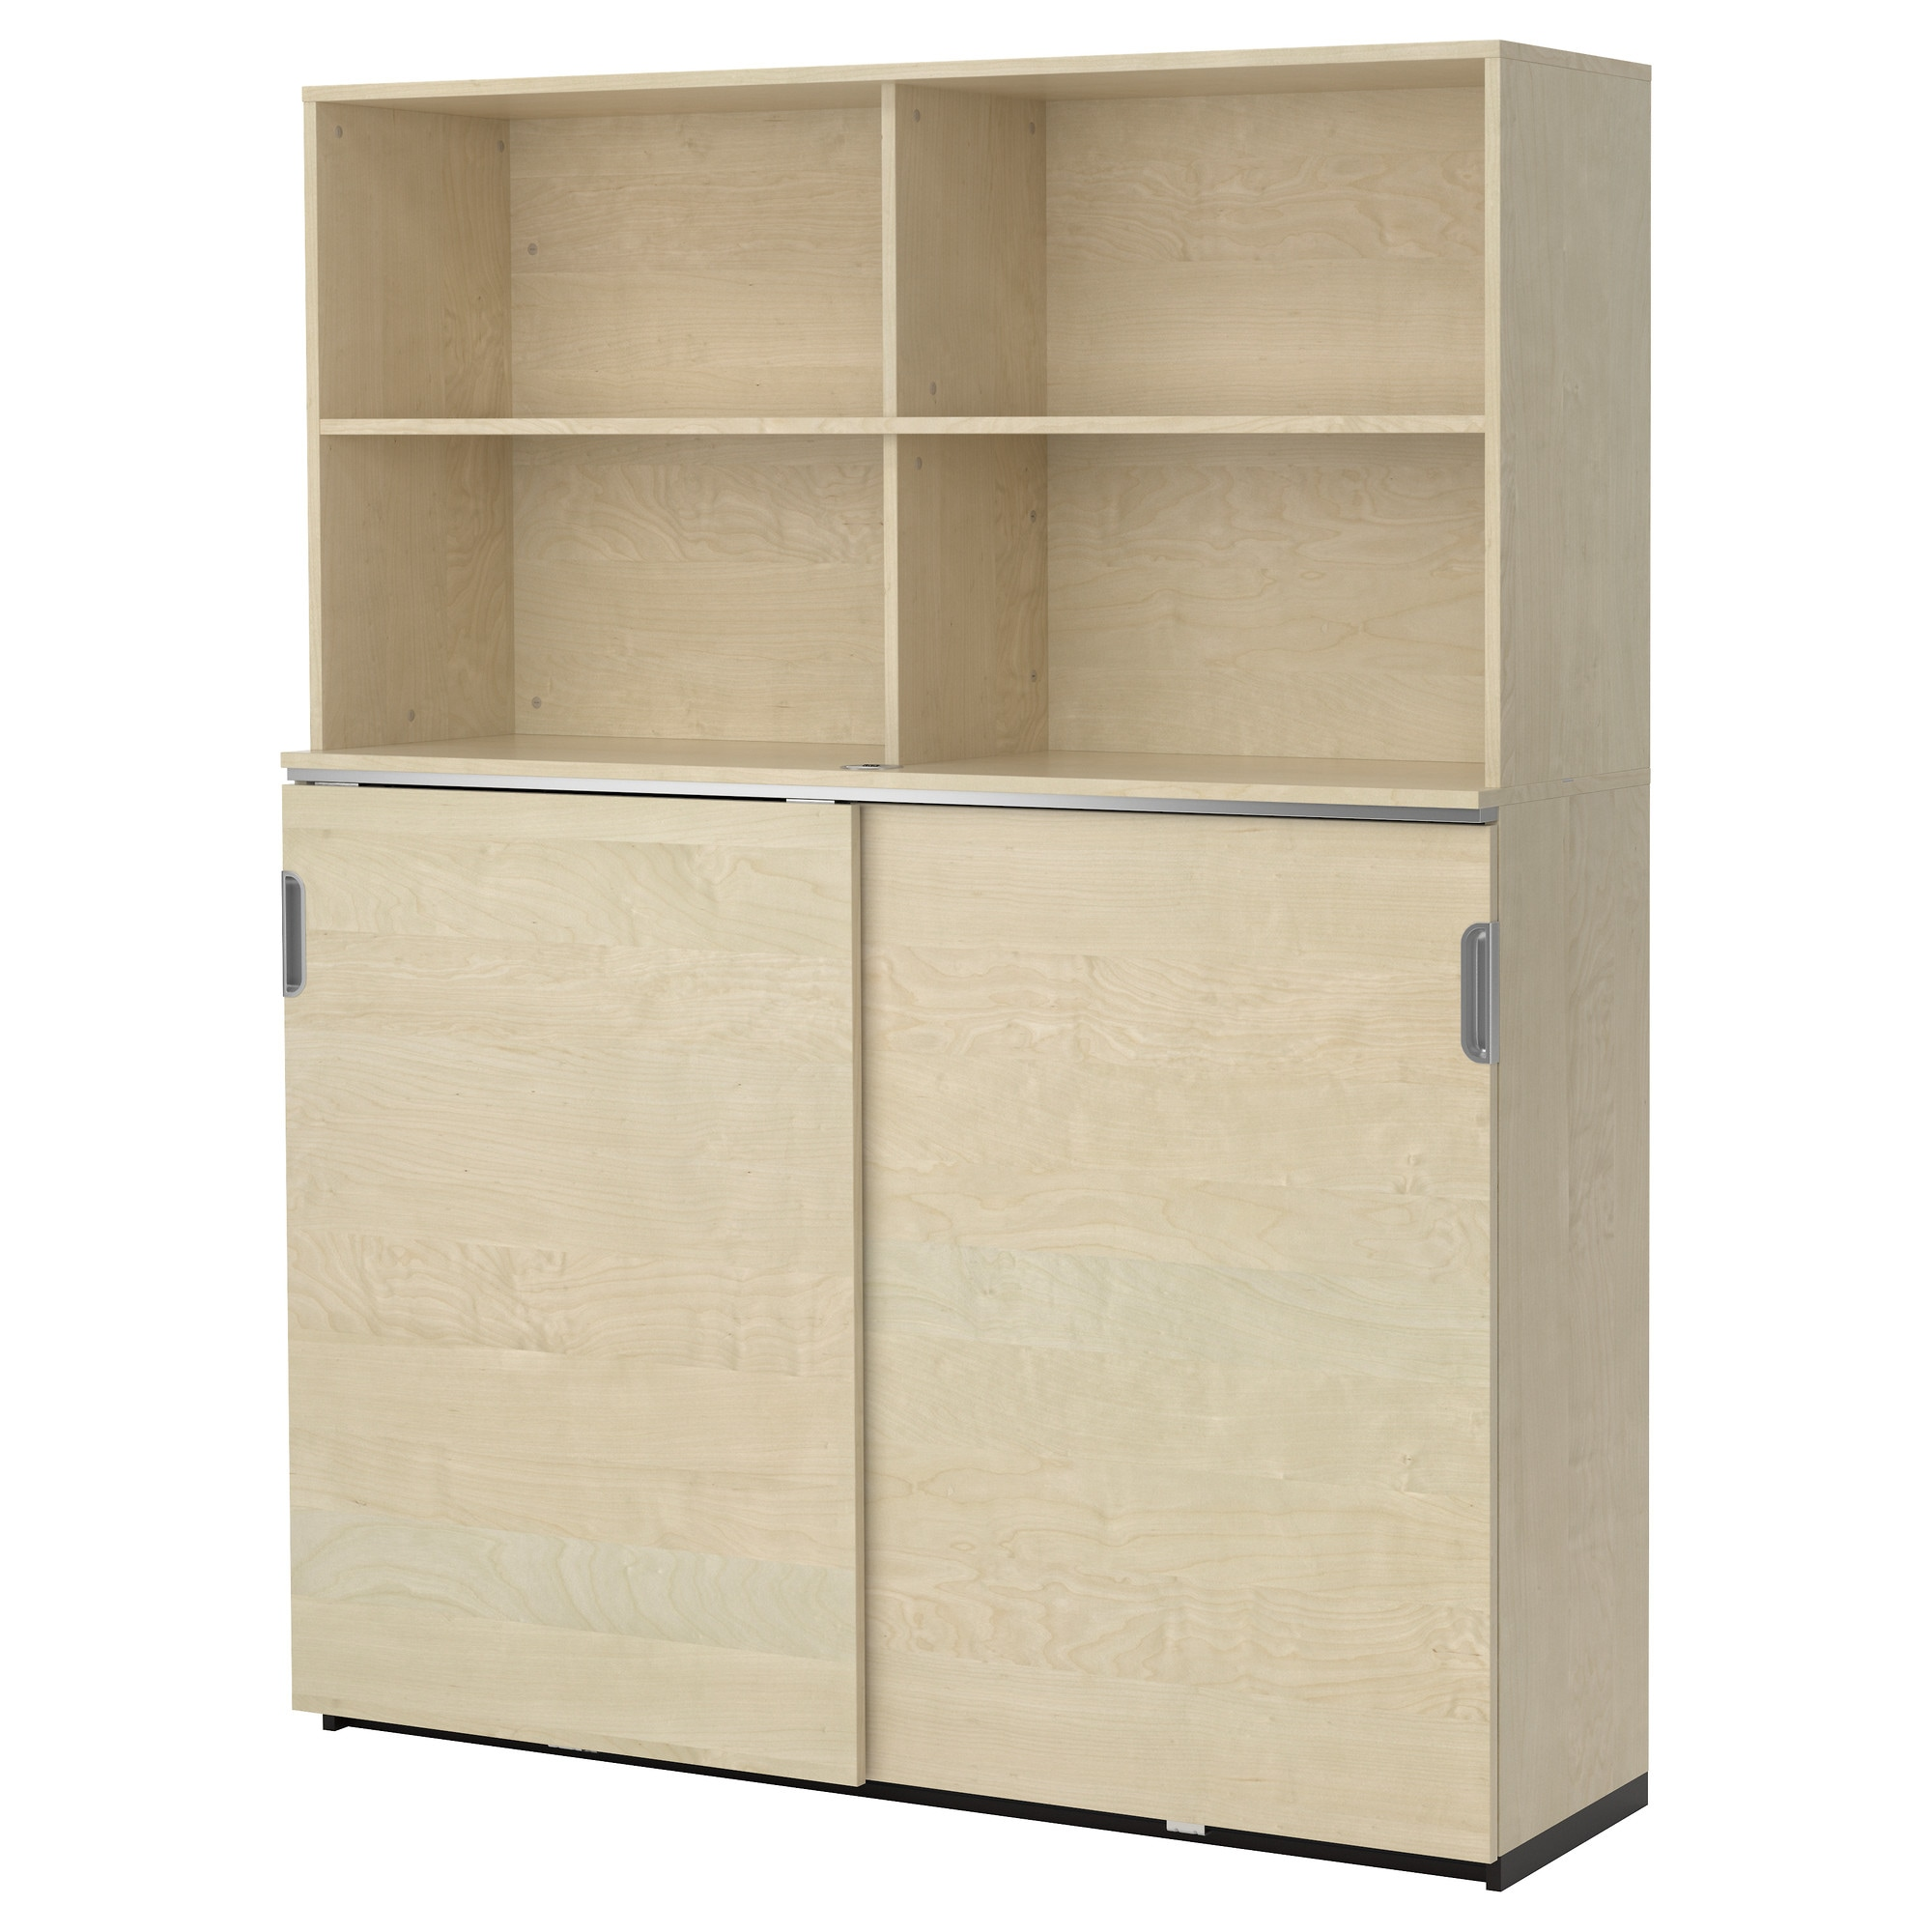 galant storage combination w sliding doors - white - ikea